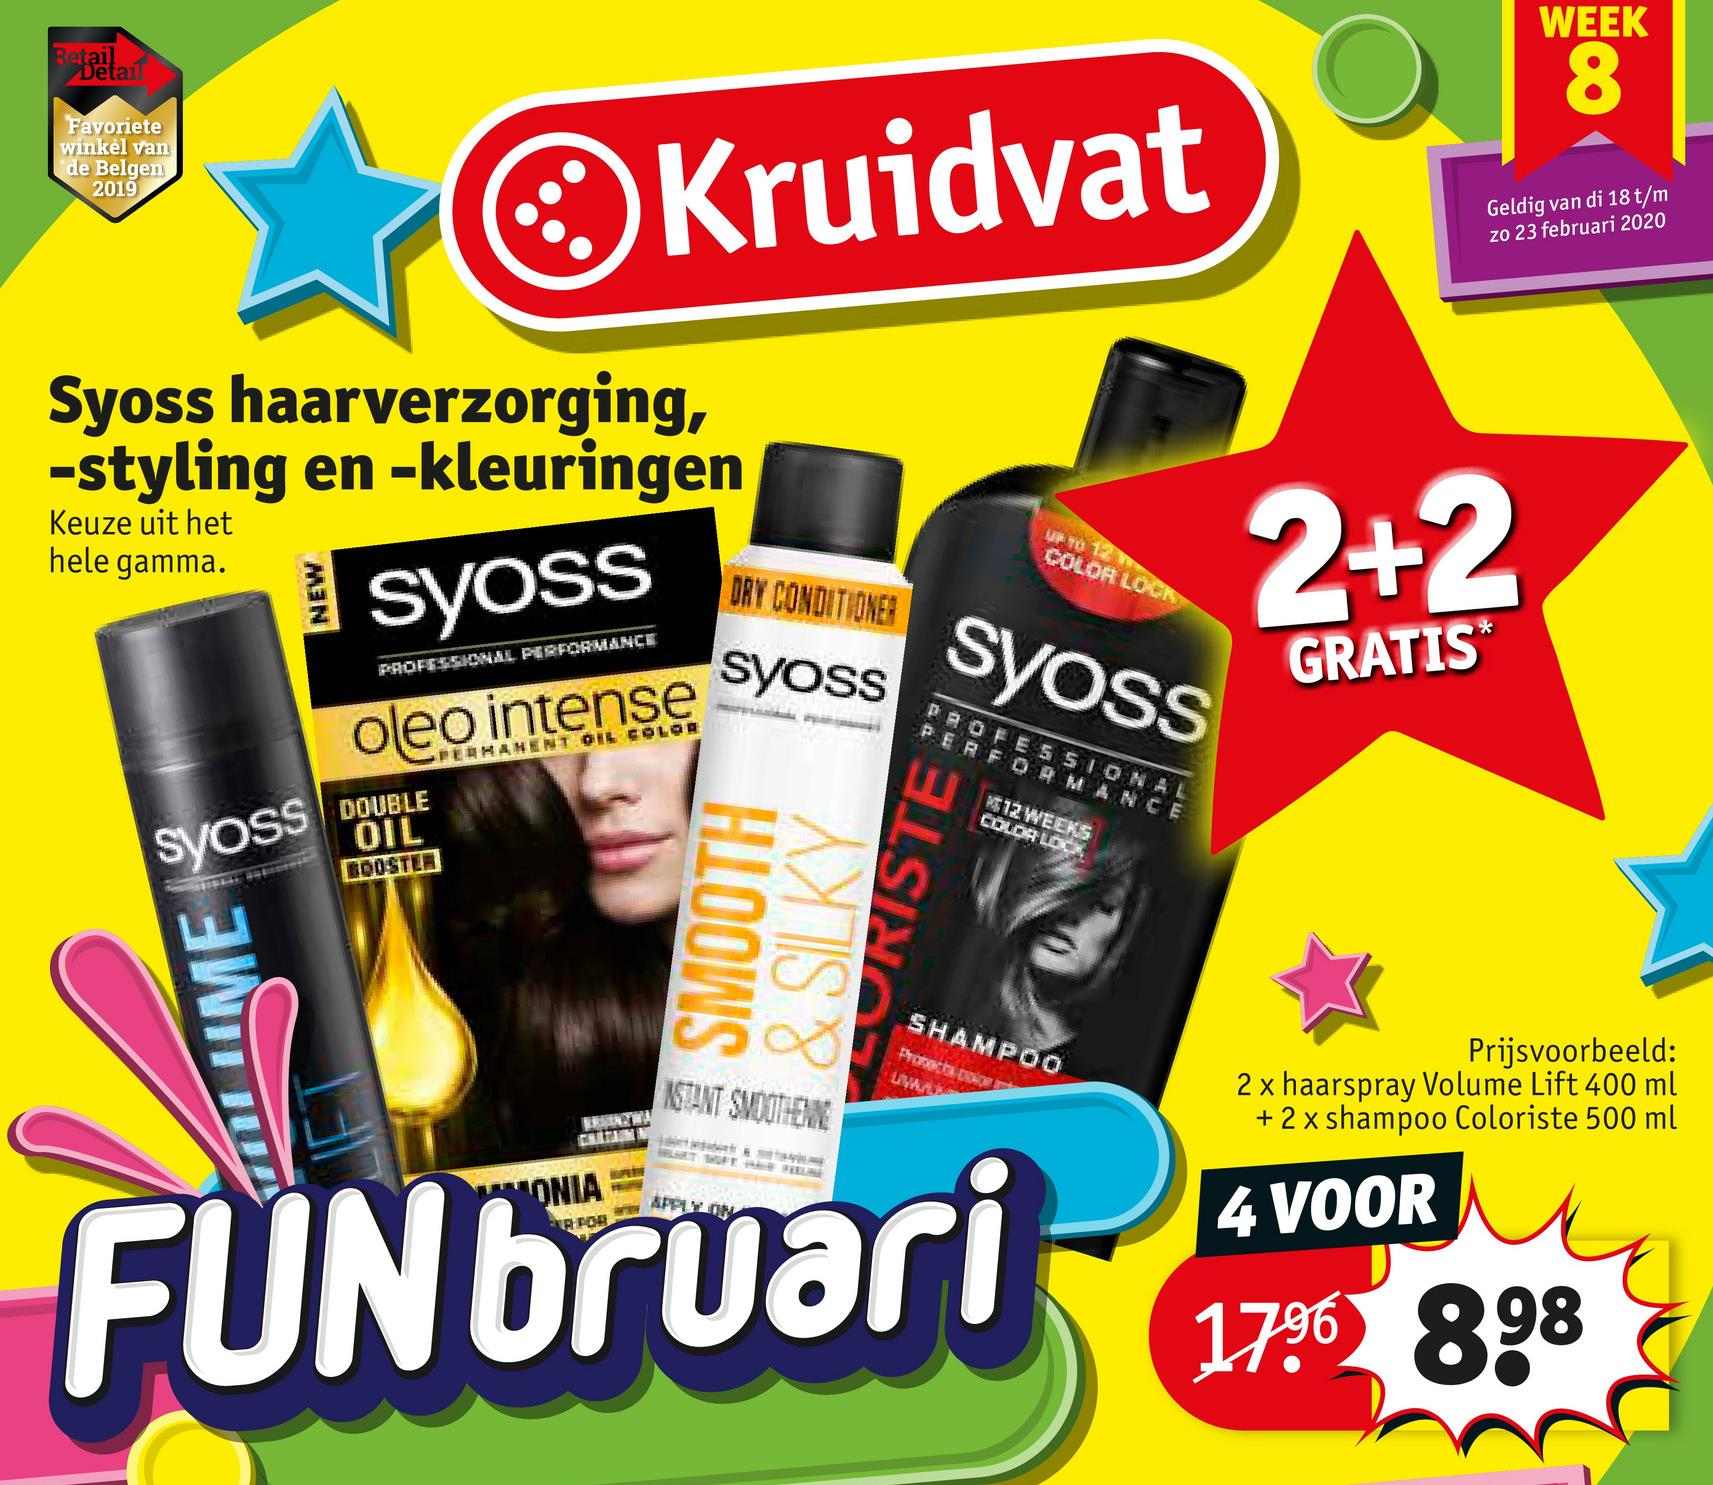 WEEK Betzetan Favoriete winkel van de Belgen 2019 Kruidvat Geldig van di 18 t/m zo 23 februari 2020 Keuze uit het hele gamma. Syoss haarverzorging, -styling en -kleuringen I SYOSS COLOA LOCK 2+2 ORY CONDITIONER SYOSS PROFESSIONAL PERFORMANCE GRATIS oleo intense Voss PERMANENT OIL COLOR DOUBLE SVOSS OIL HIOOWS & SILKY LEURISTE SHAMPOO Protect WA NSTANT SMOOTHEW Prijsvoorbeeld: 2 x haarspray Volume Lift 400 ml + 2 x shampoo Coloriste 500 ml ONIA APPLZ 4 VOOR POB FUNbruari no 1796 898